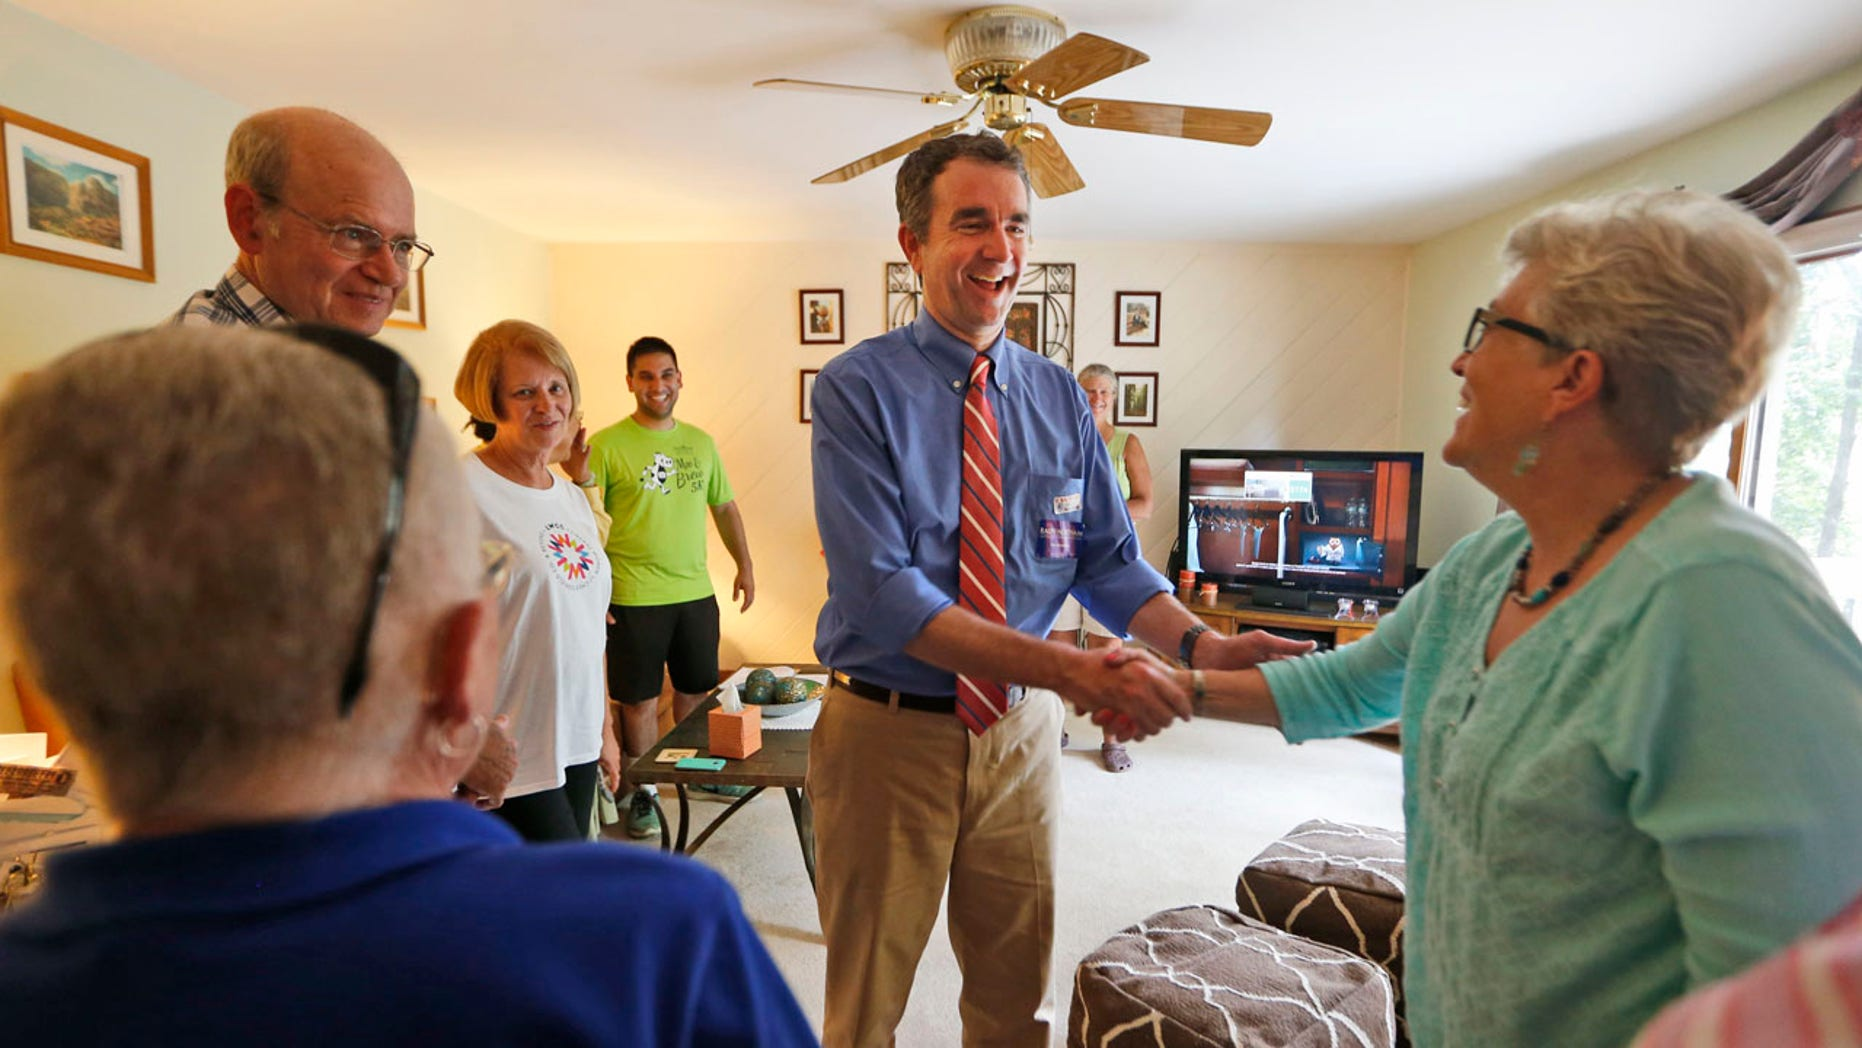 Democratic candidate for governor, Lt. Gov. Ralph Northam greets voters at a canvas kickoff Tuesday, June 13, 2017, in Chesterfield, Va. Lt. Gov Ralph Northam faces former Congressman Tom Perriello in today's primary. (AP Photo/Steve Helber)